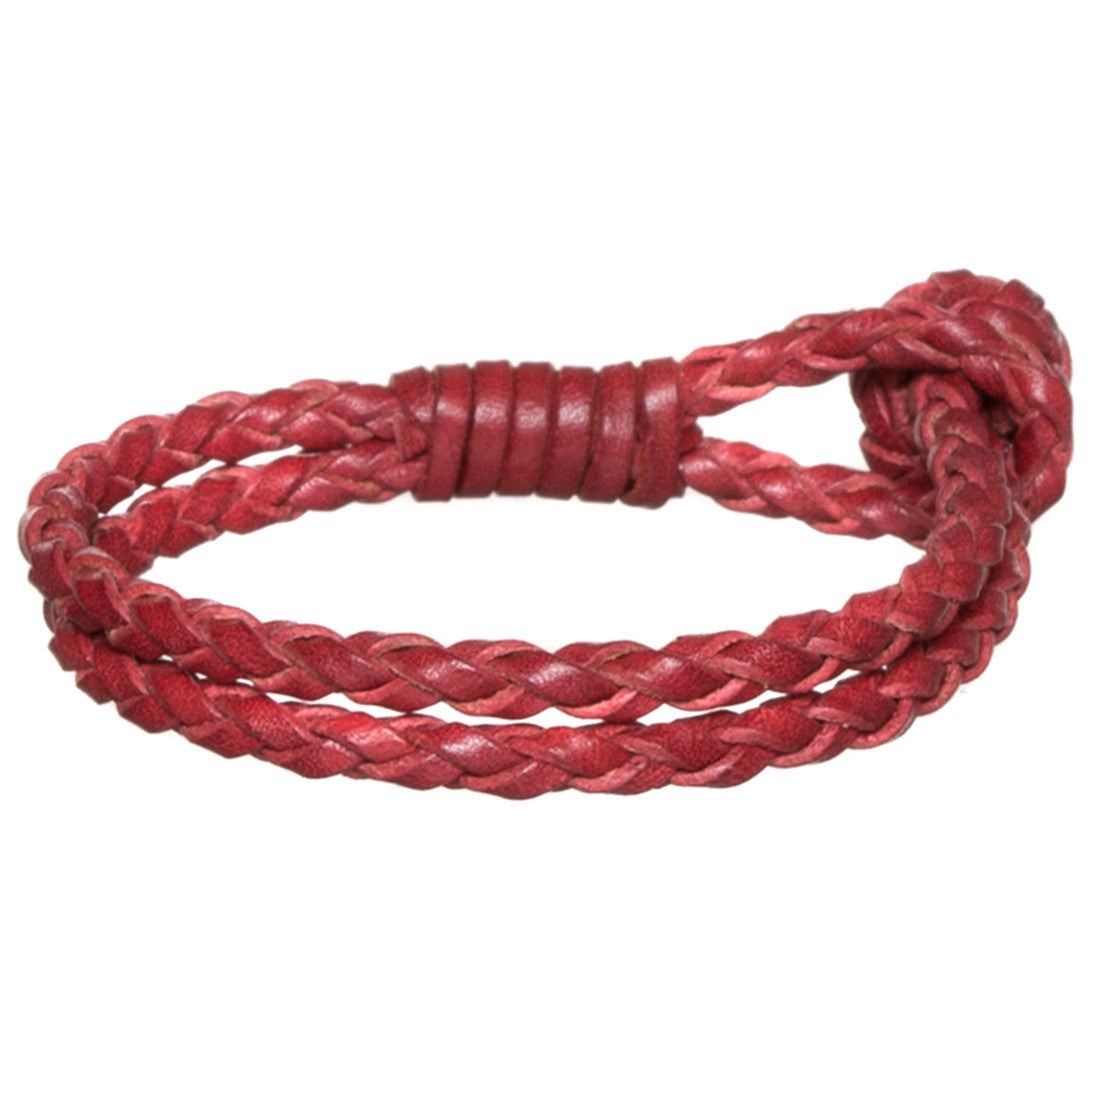 Gipsy Leather Bracelet - Lobster